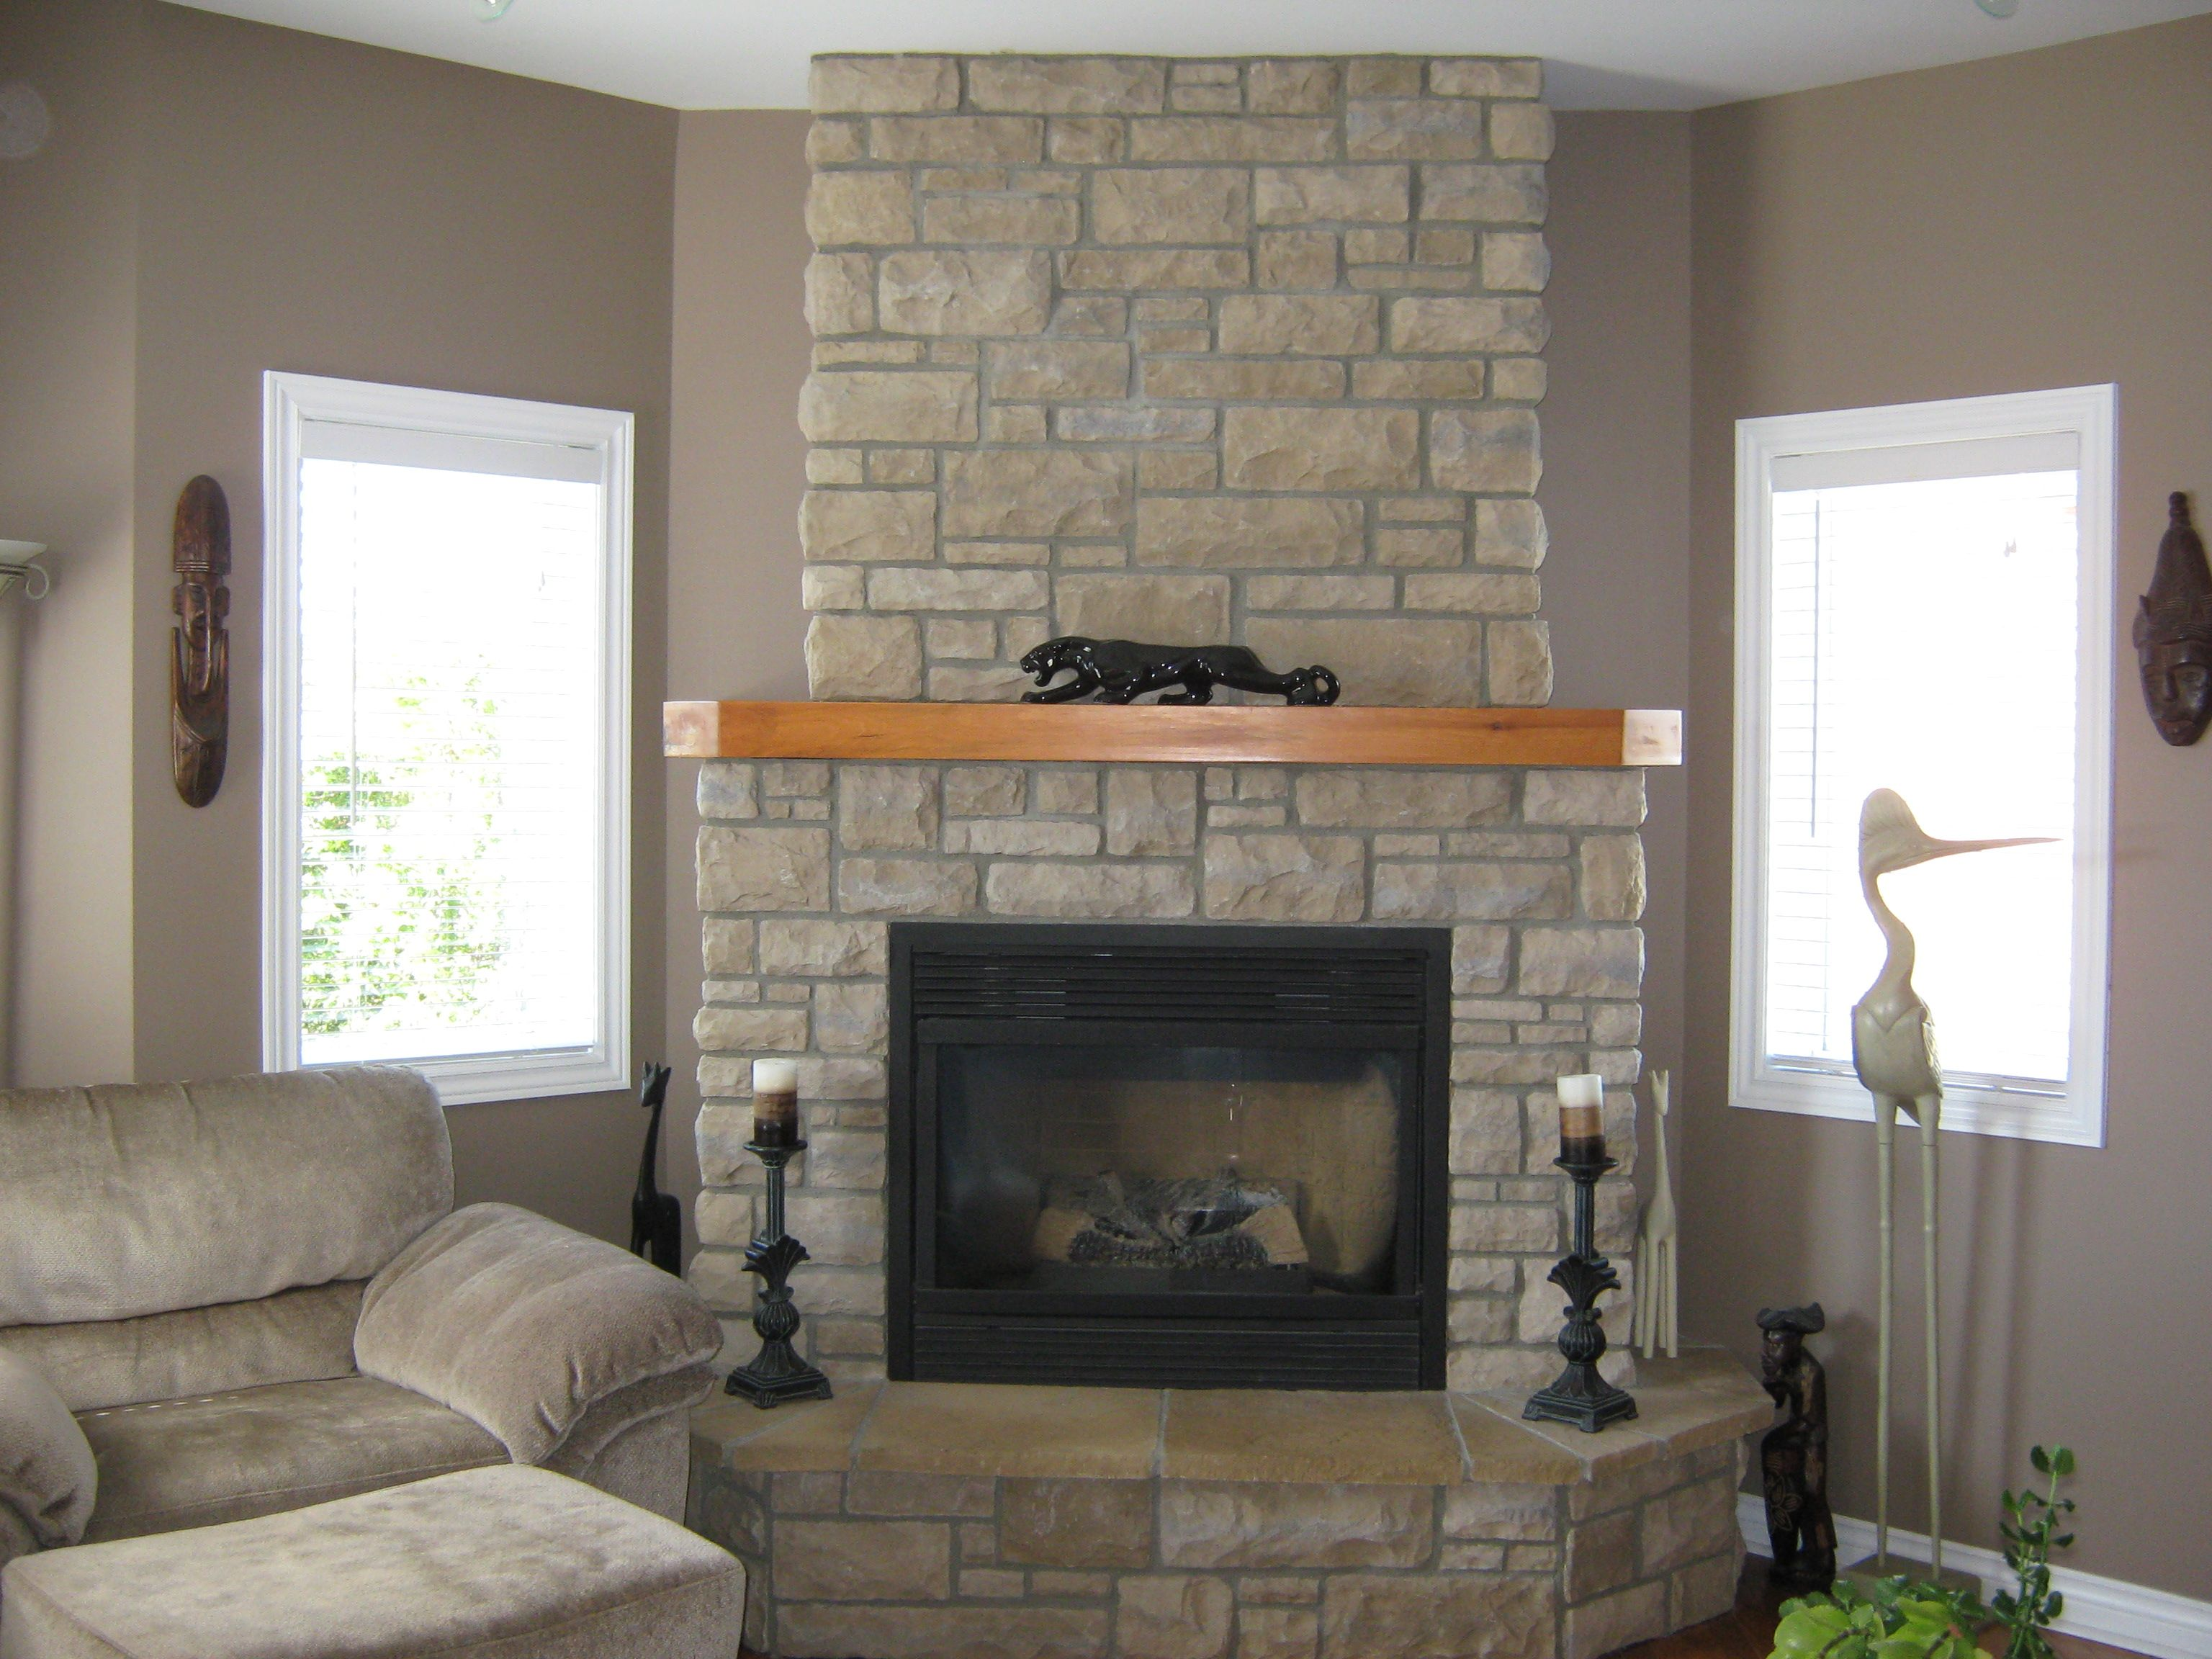 Corner Fireplace Ideas In Stone 54 best fireplace ideas images on pinterest | fireplace ideas